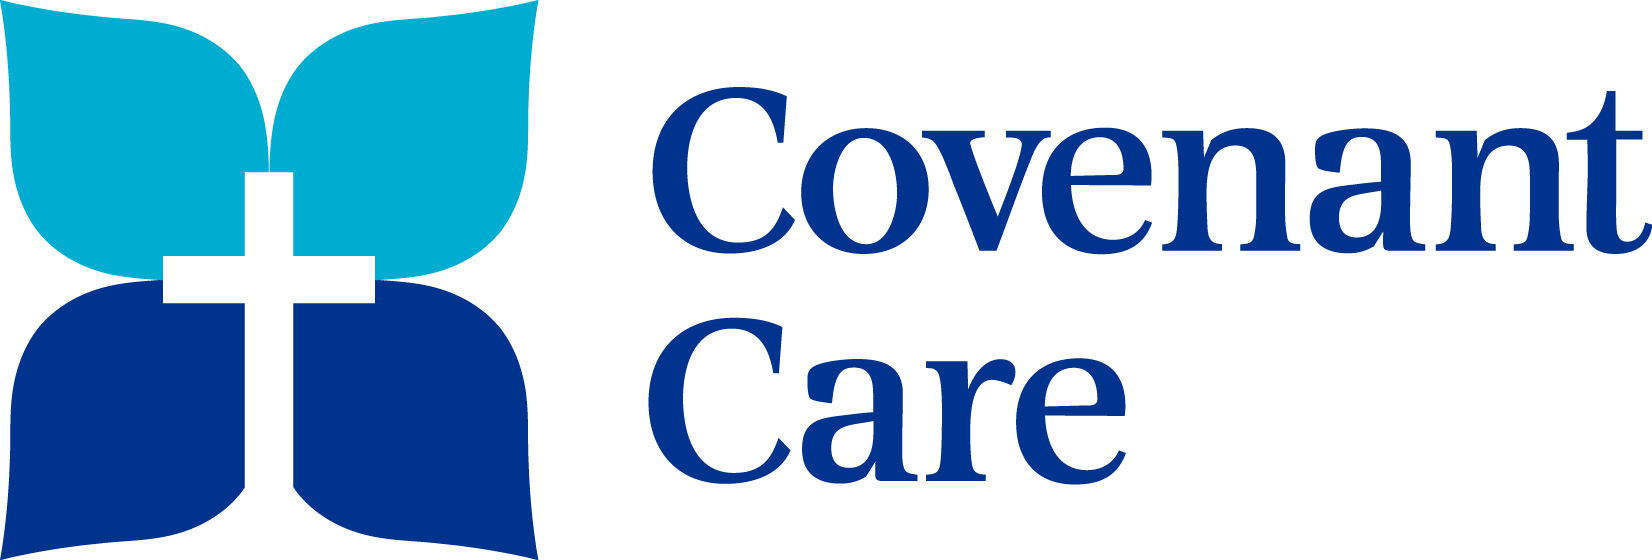 covenant_care_logo_rgb